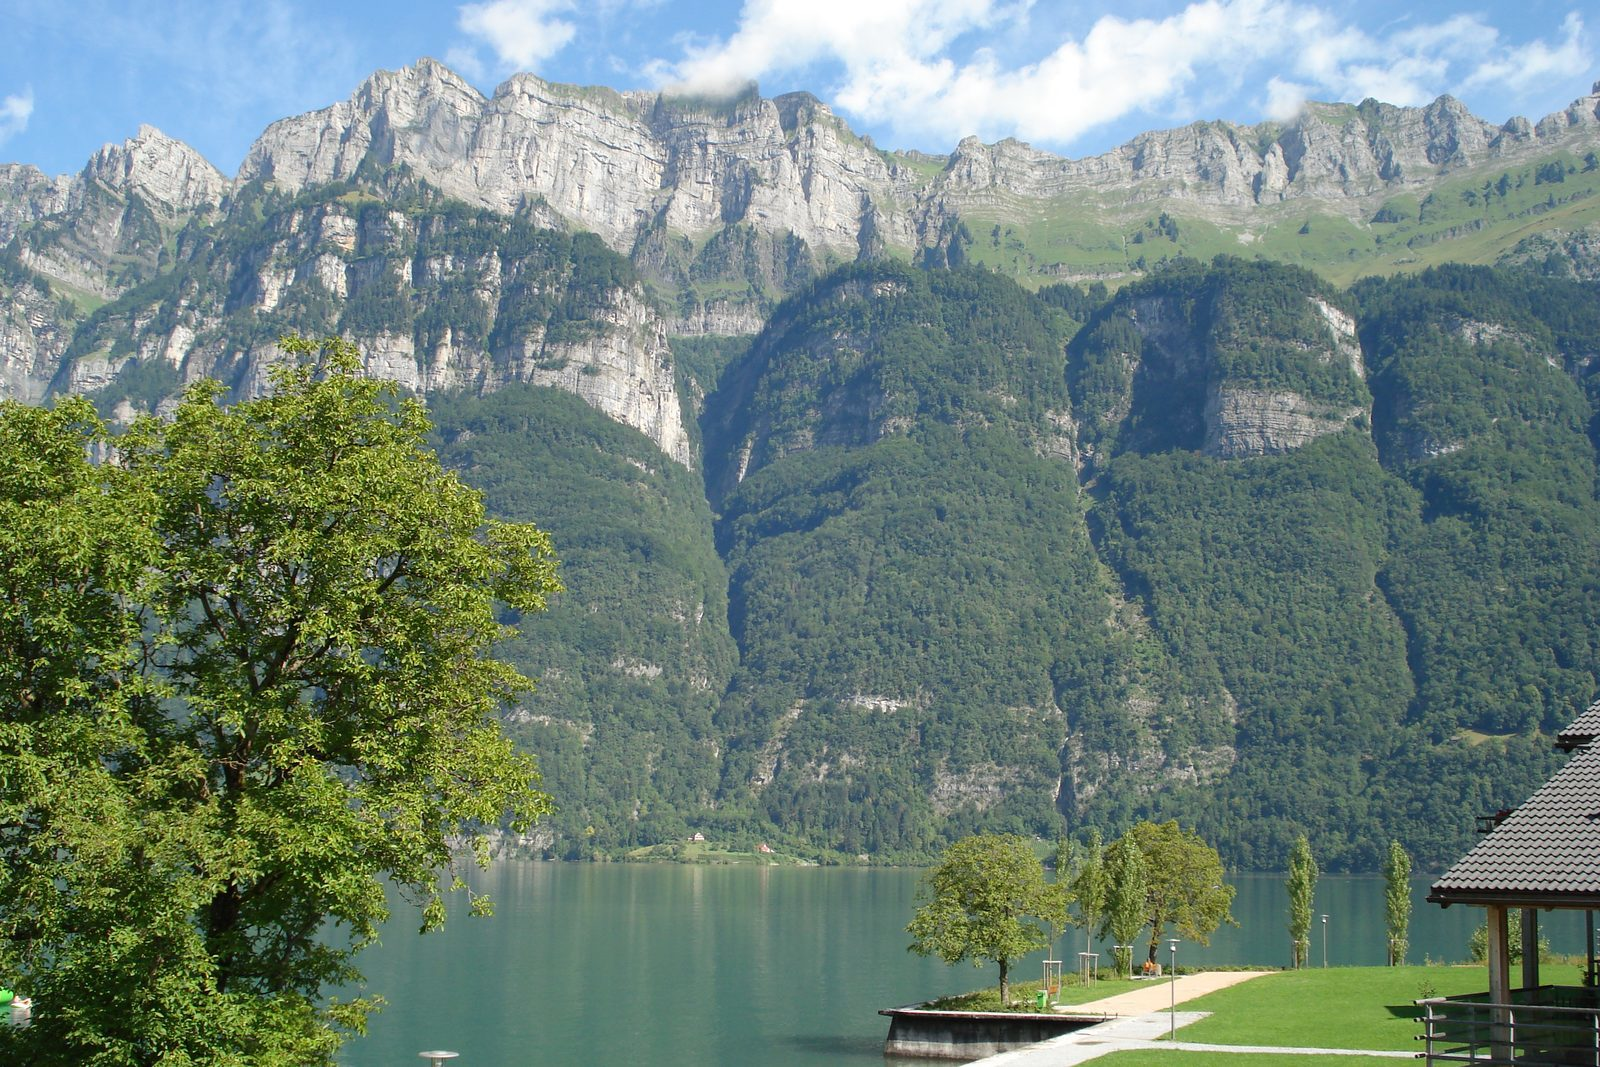 The Churfirsten from Resort Walensee